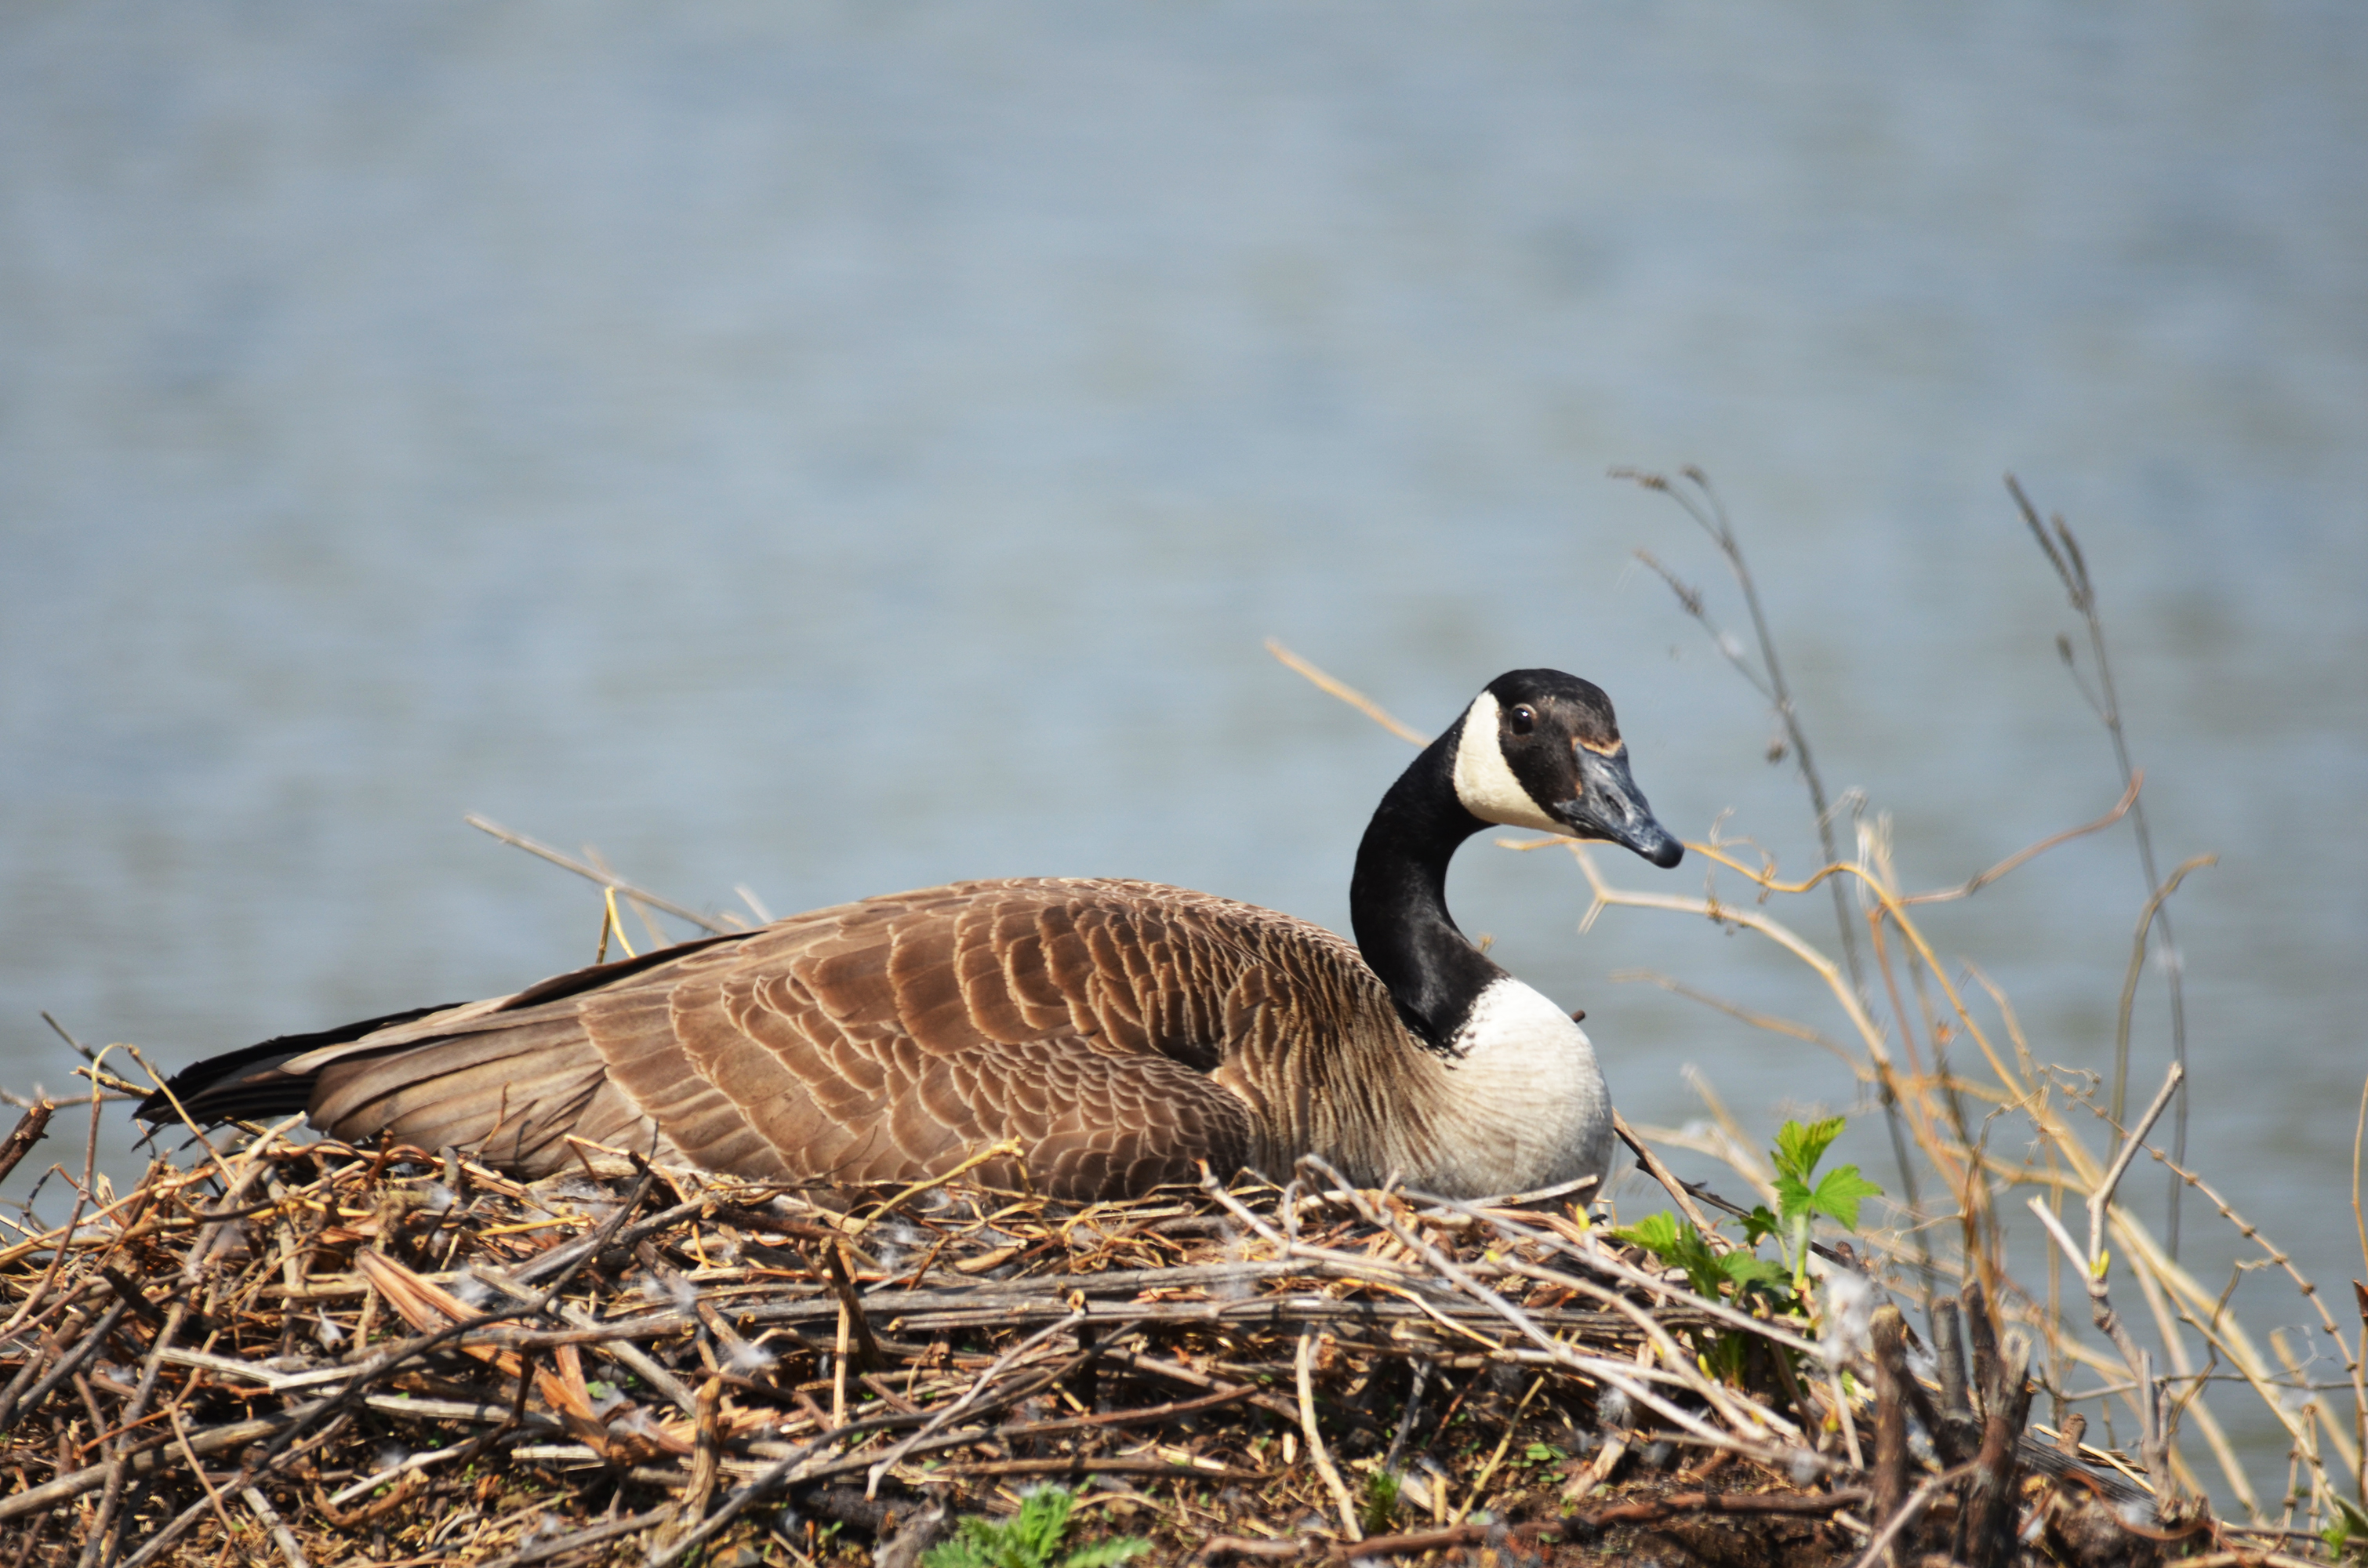 Canada goose on her nest